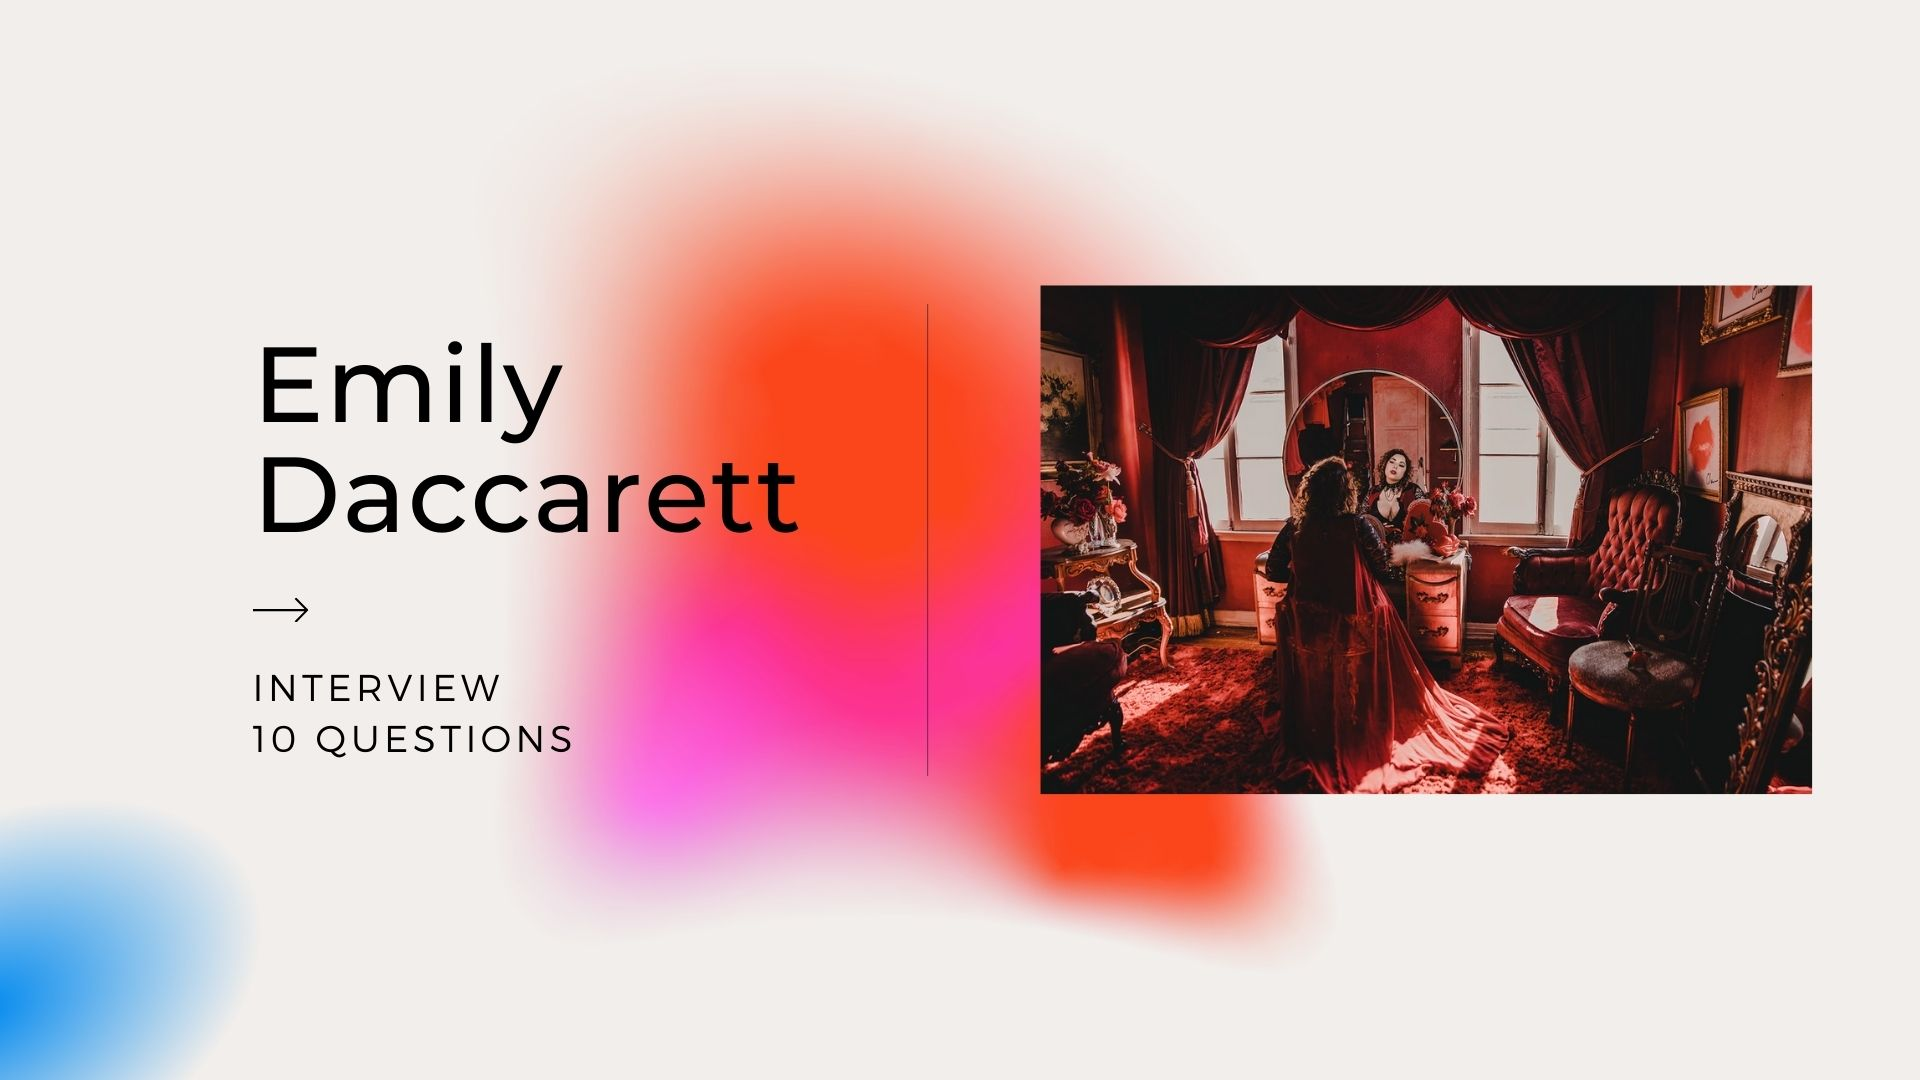 Today we would like to introduce you to Emily Daccarett, fashion and music can not be separated. Daccarett creates an immersive world of storytelling through music, film, and fashion. Each artistic direction begins with a beat that forms a story.